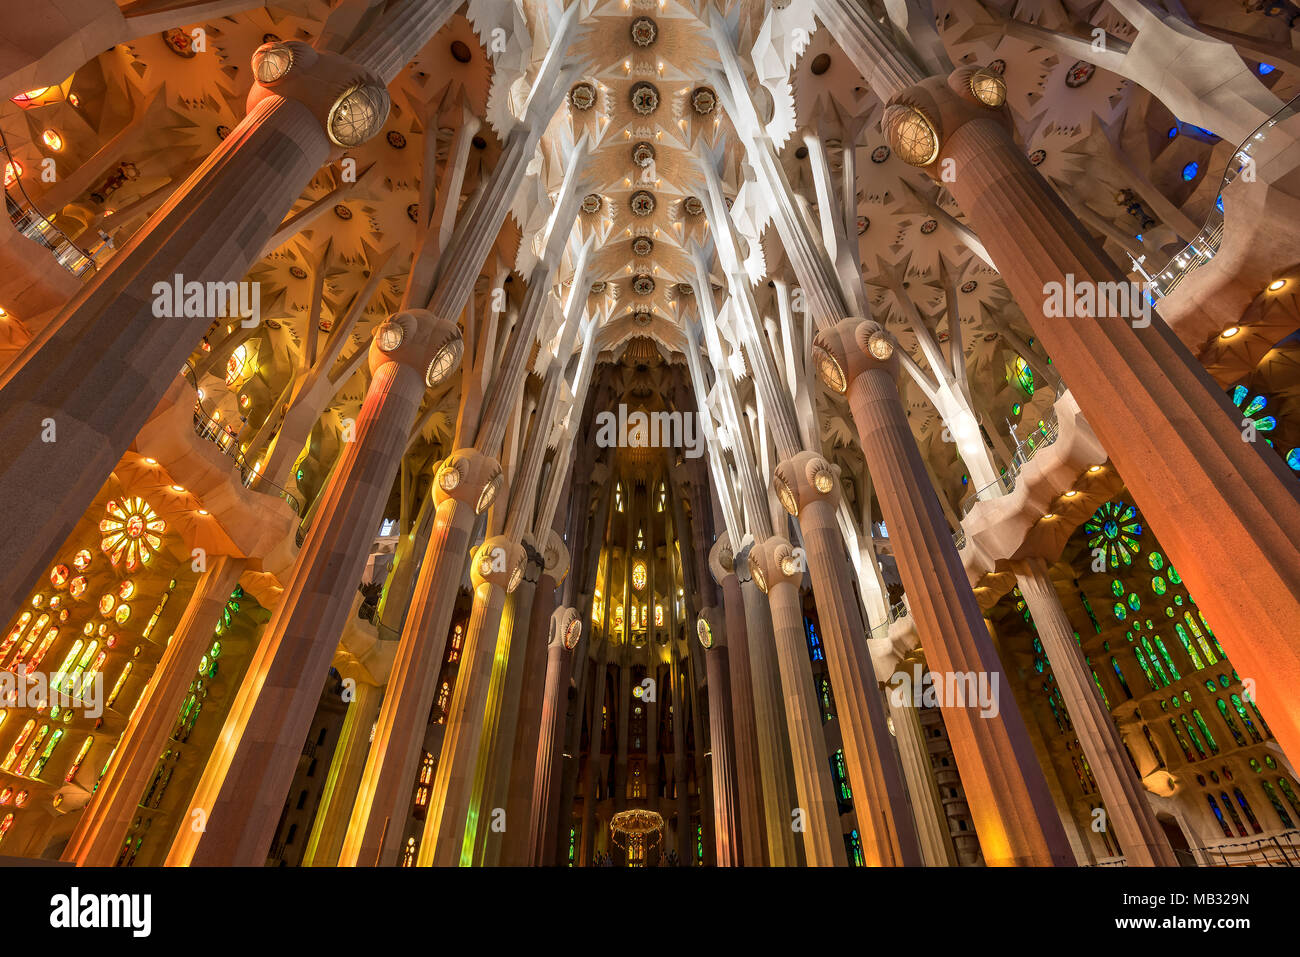 Low angle view of the roof in the nave, Sagrada Familia, Barcelona, Catalonia, Spain - Stock Image